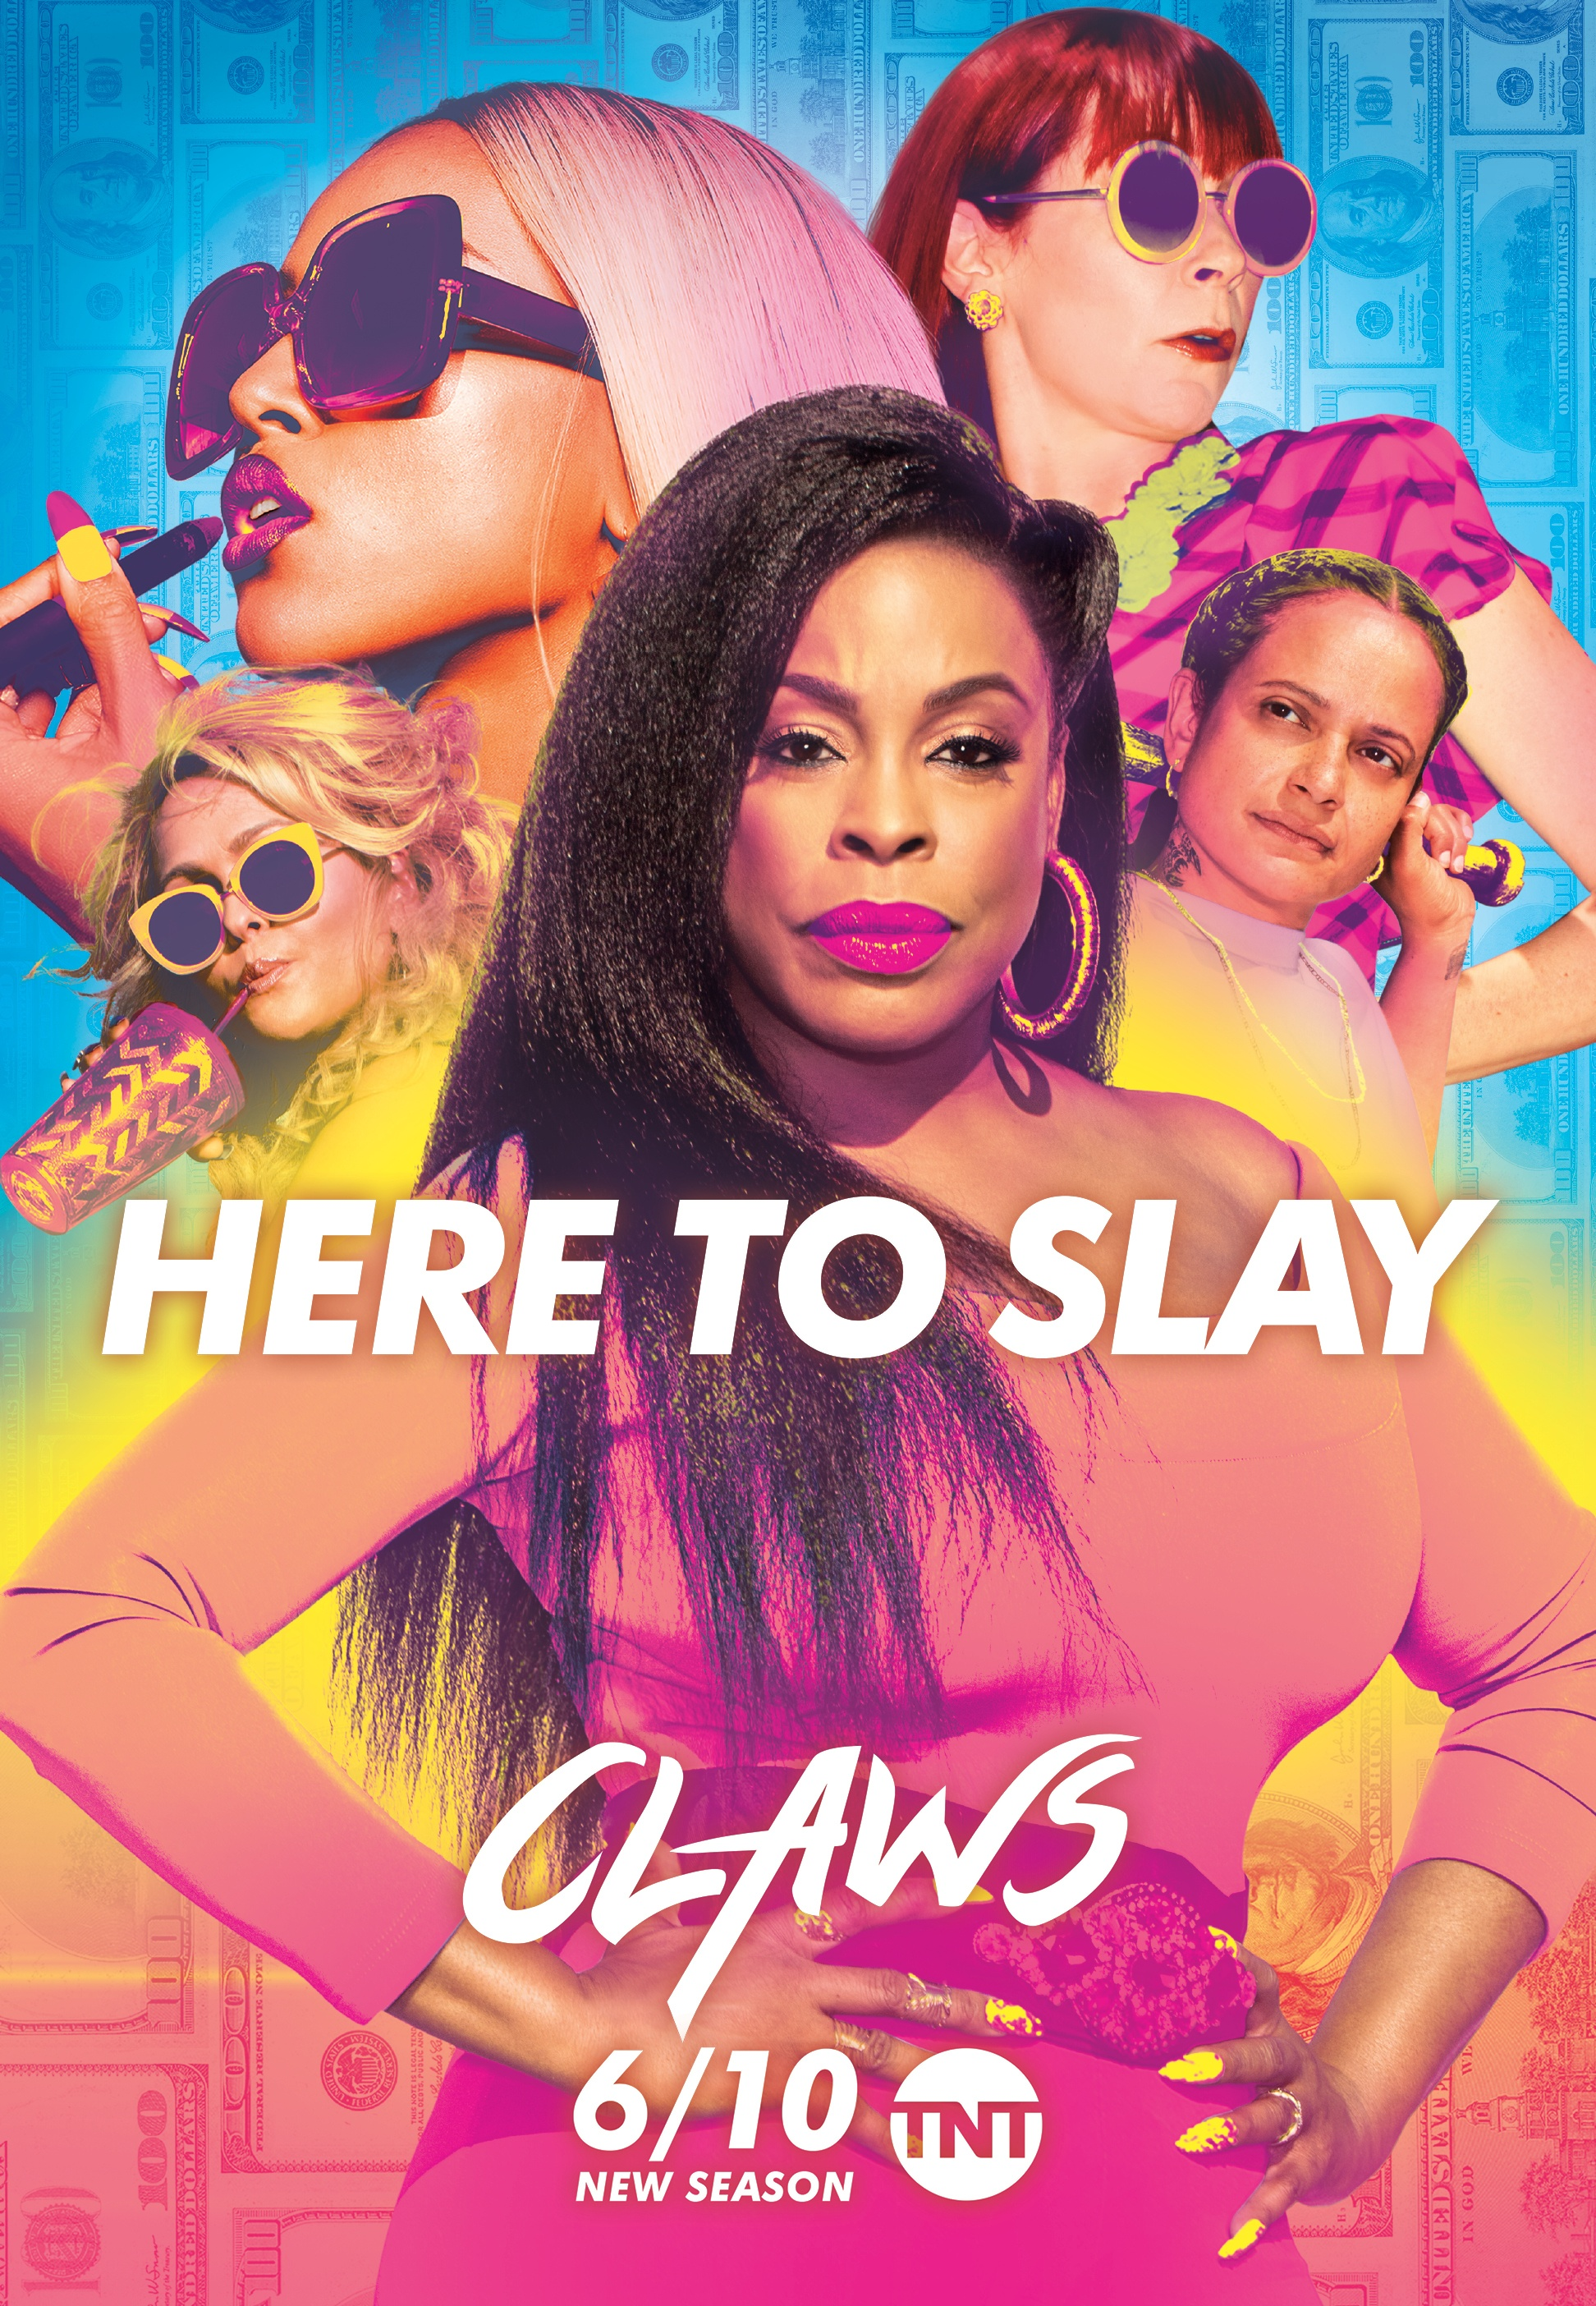 Image Media for Claws S2: Queens on Claws Drag Mother Tongue